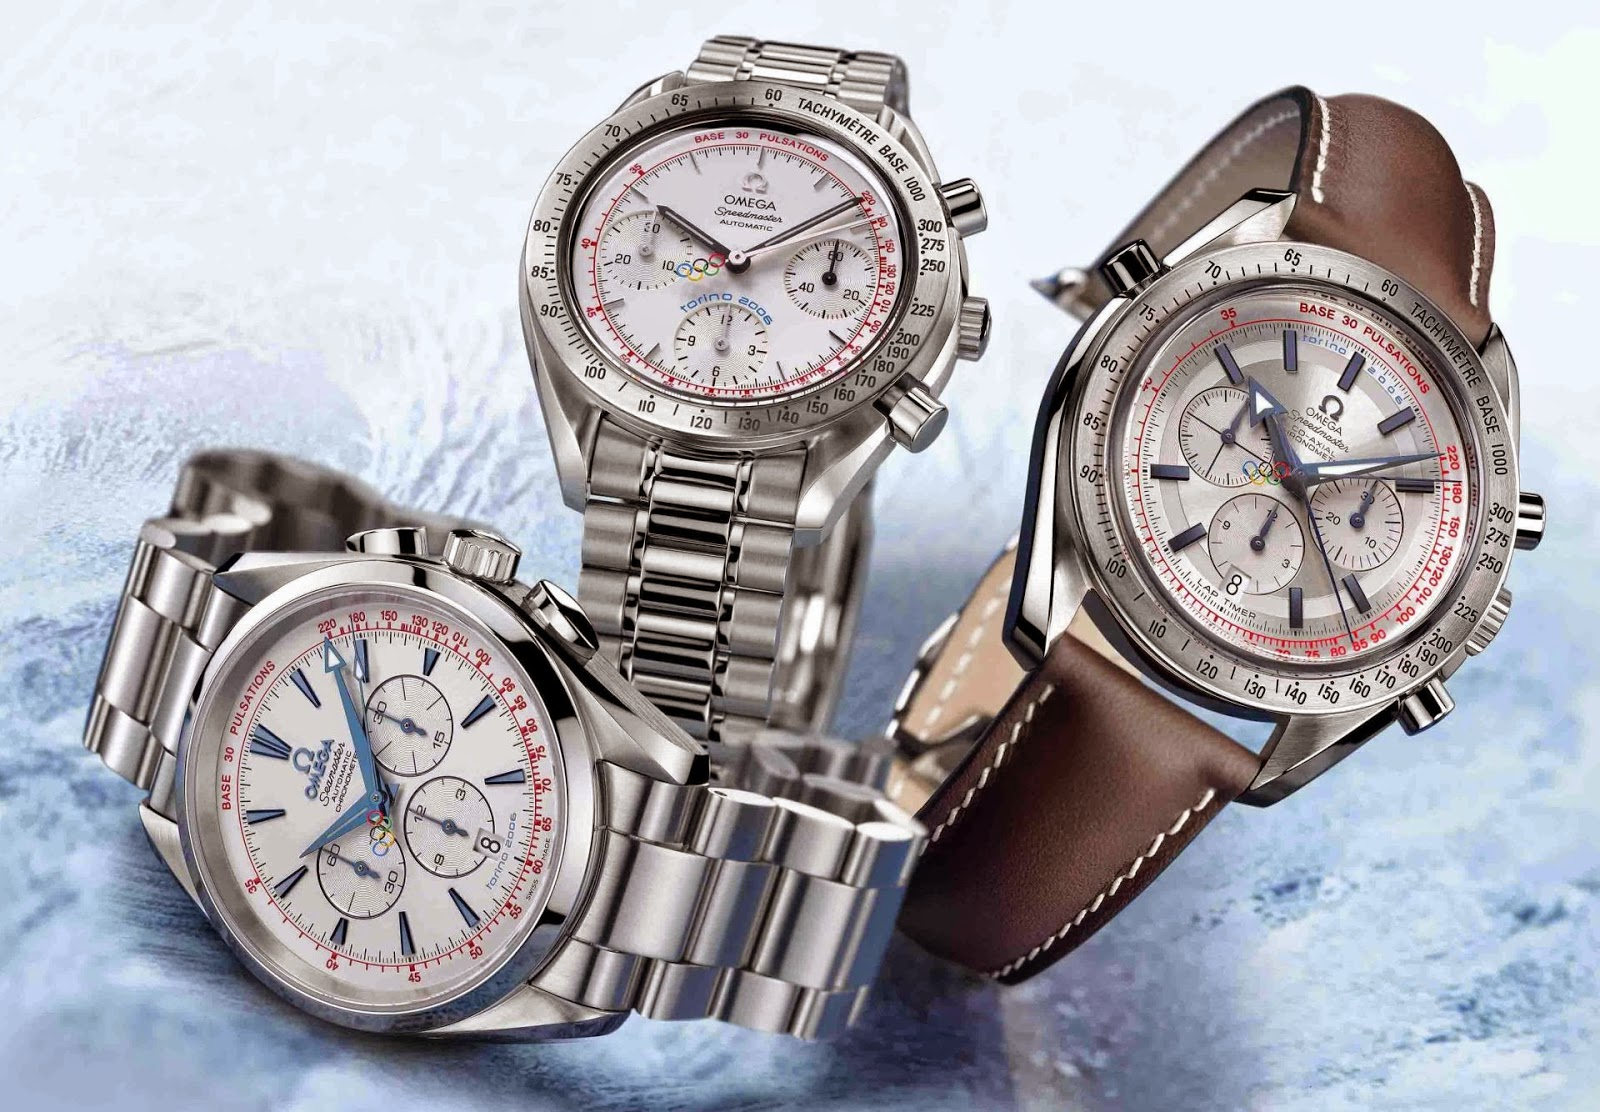 OMEGA Torino 2006 Collection Limited Series - Speedmaster Broad Arrow Co-Axial Rattrapante, Seamaster Aqua Terra Column-Wheel Chronograph and Speedmaster Automatic